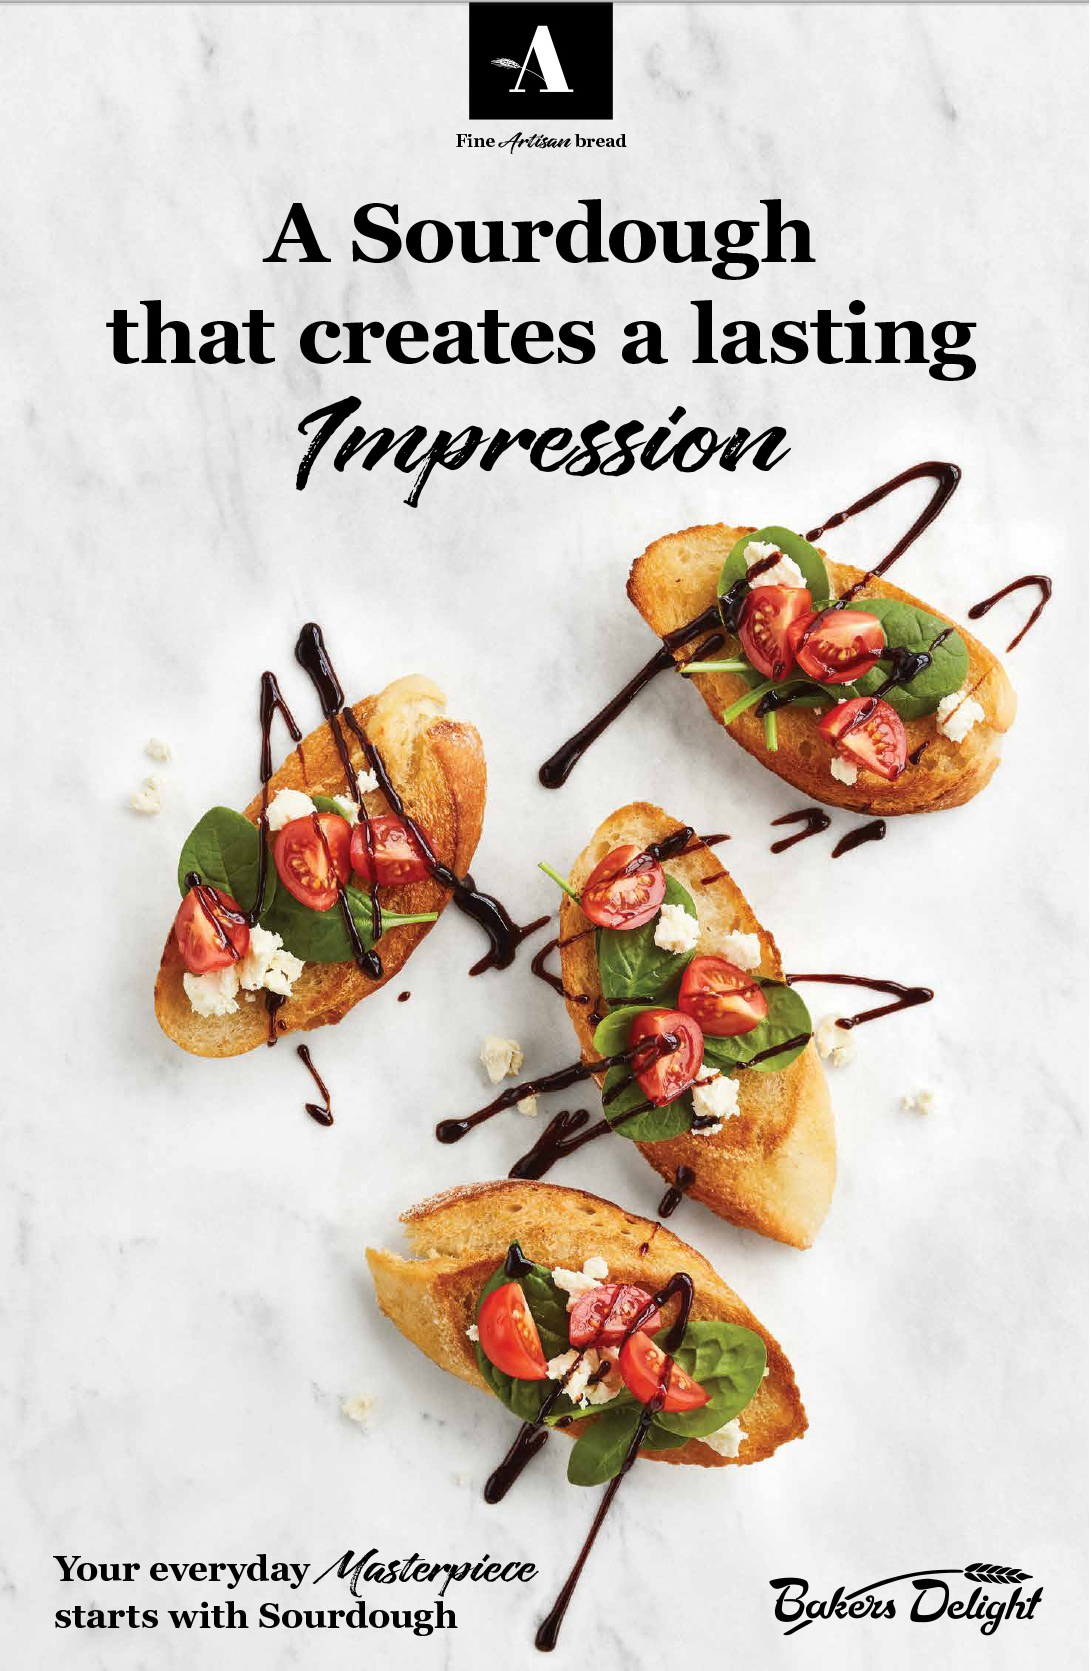 Bakers Delight FMCG Ad Food styling